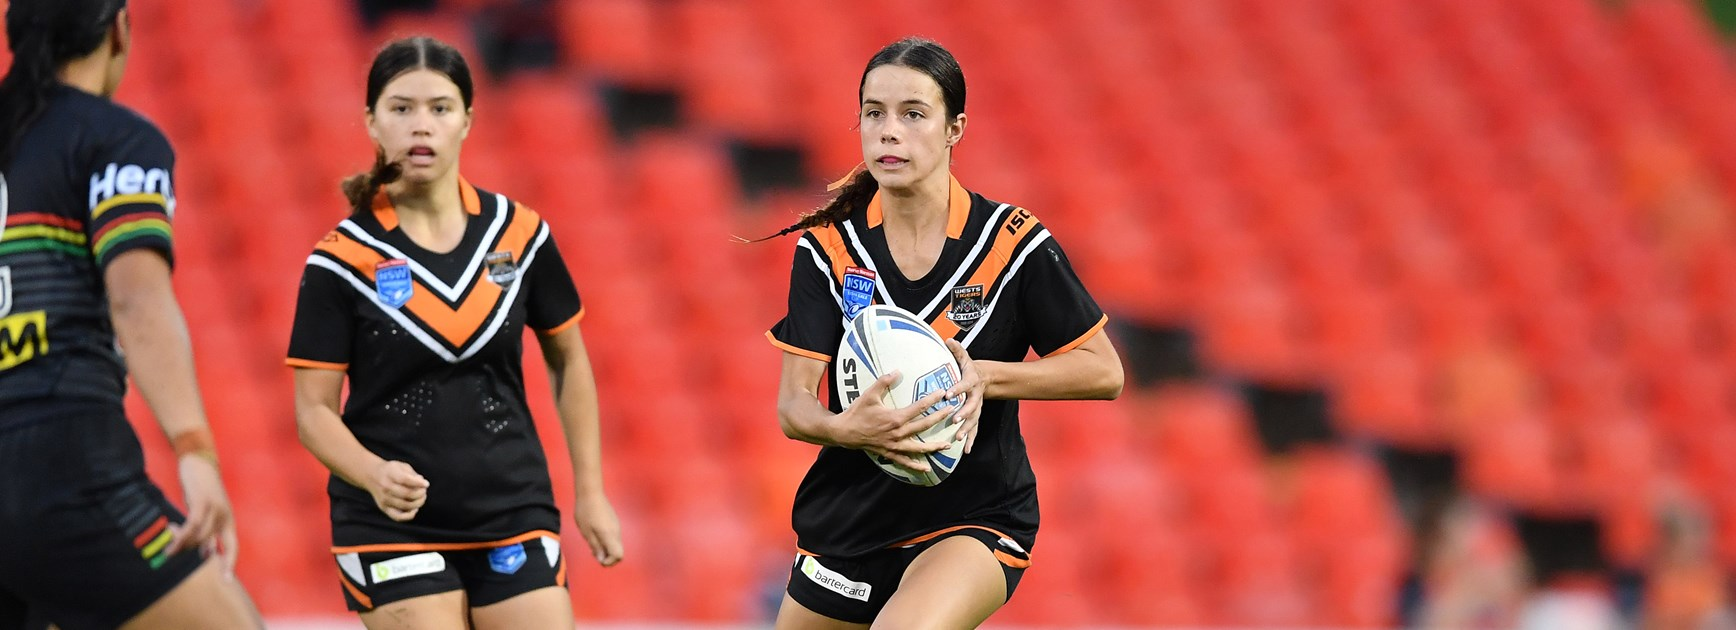 Wests Tigers 2019 Junior Representative Award Winners